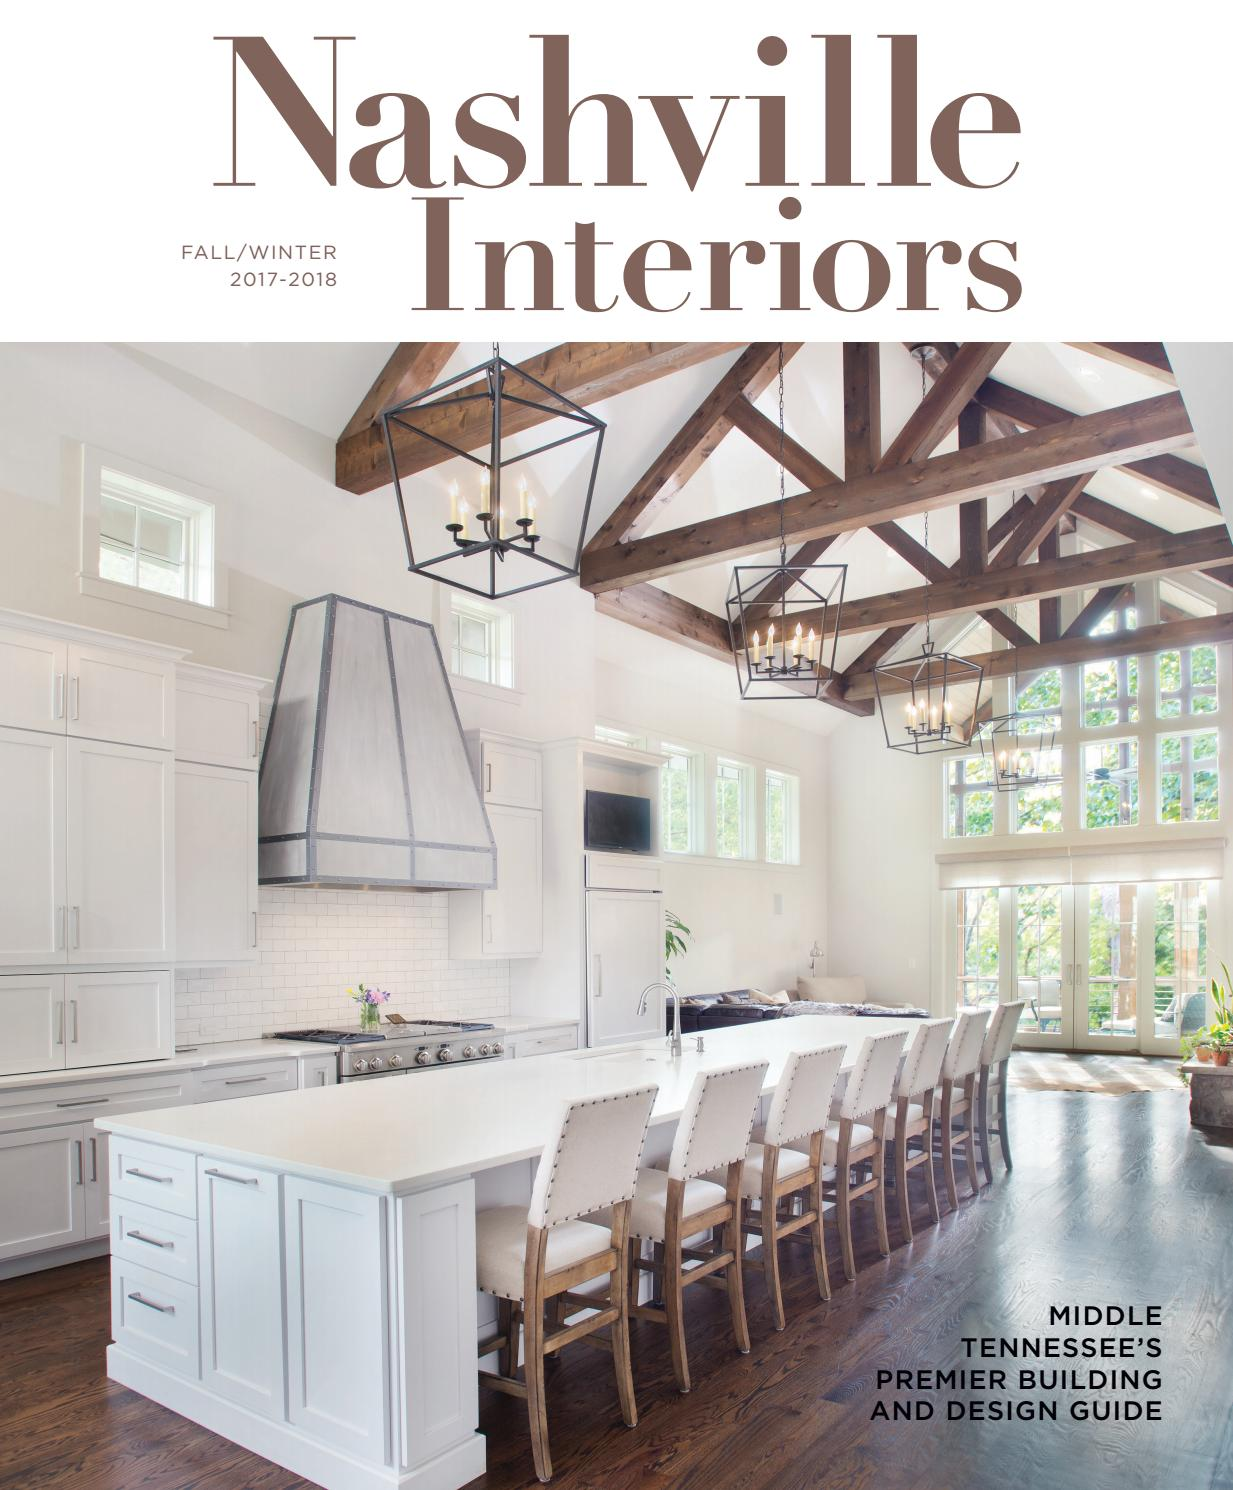 ccpy interior design 34 stunningly scandinavian interior designs home design Nashville Interiors Fall 2017-Winter 2018 by Nashville Interiors - issuu